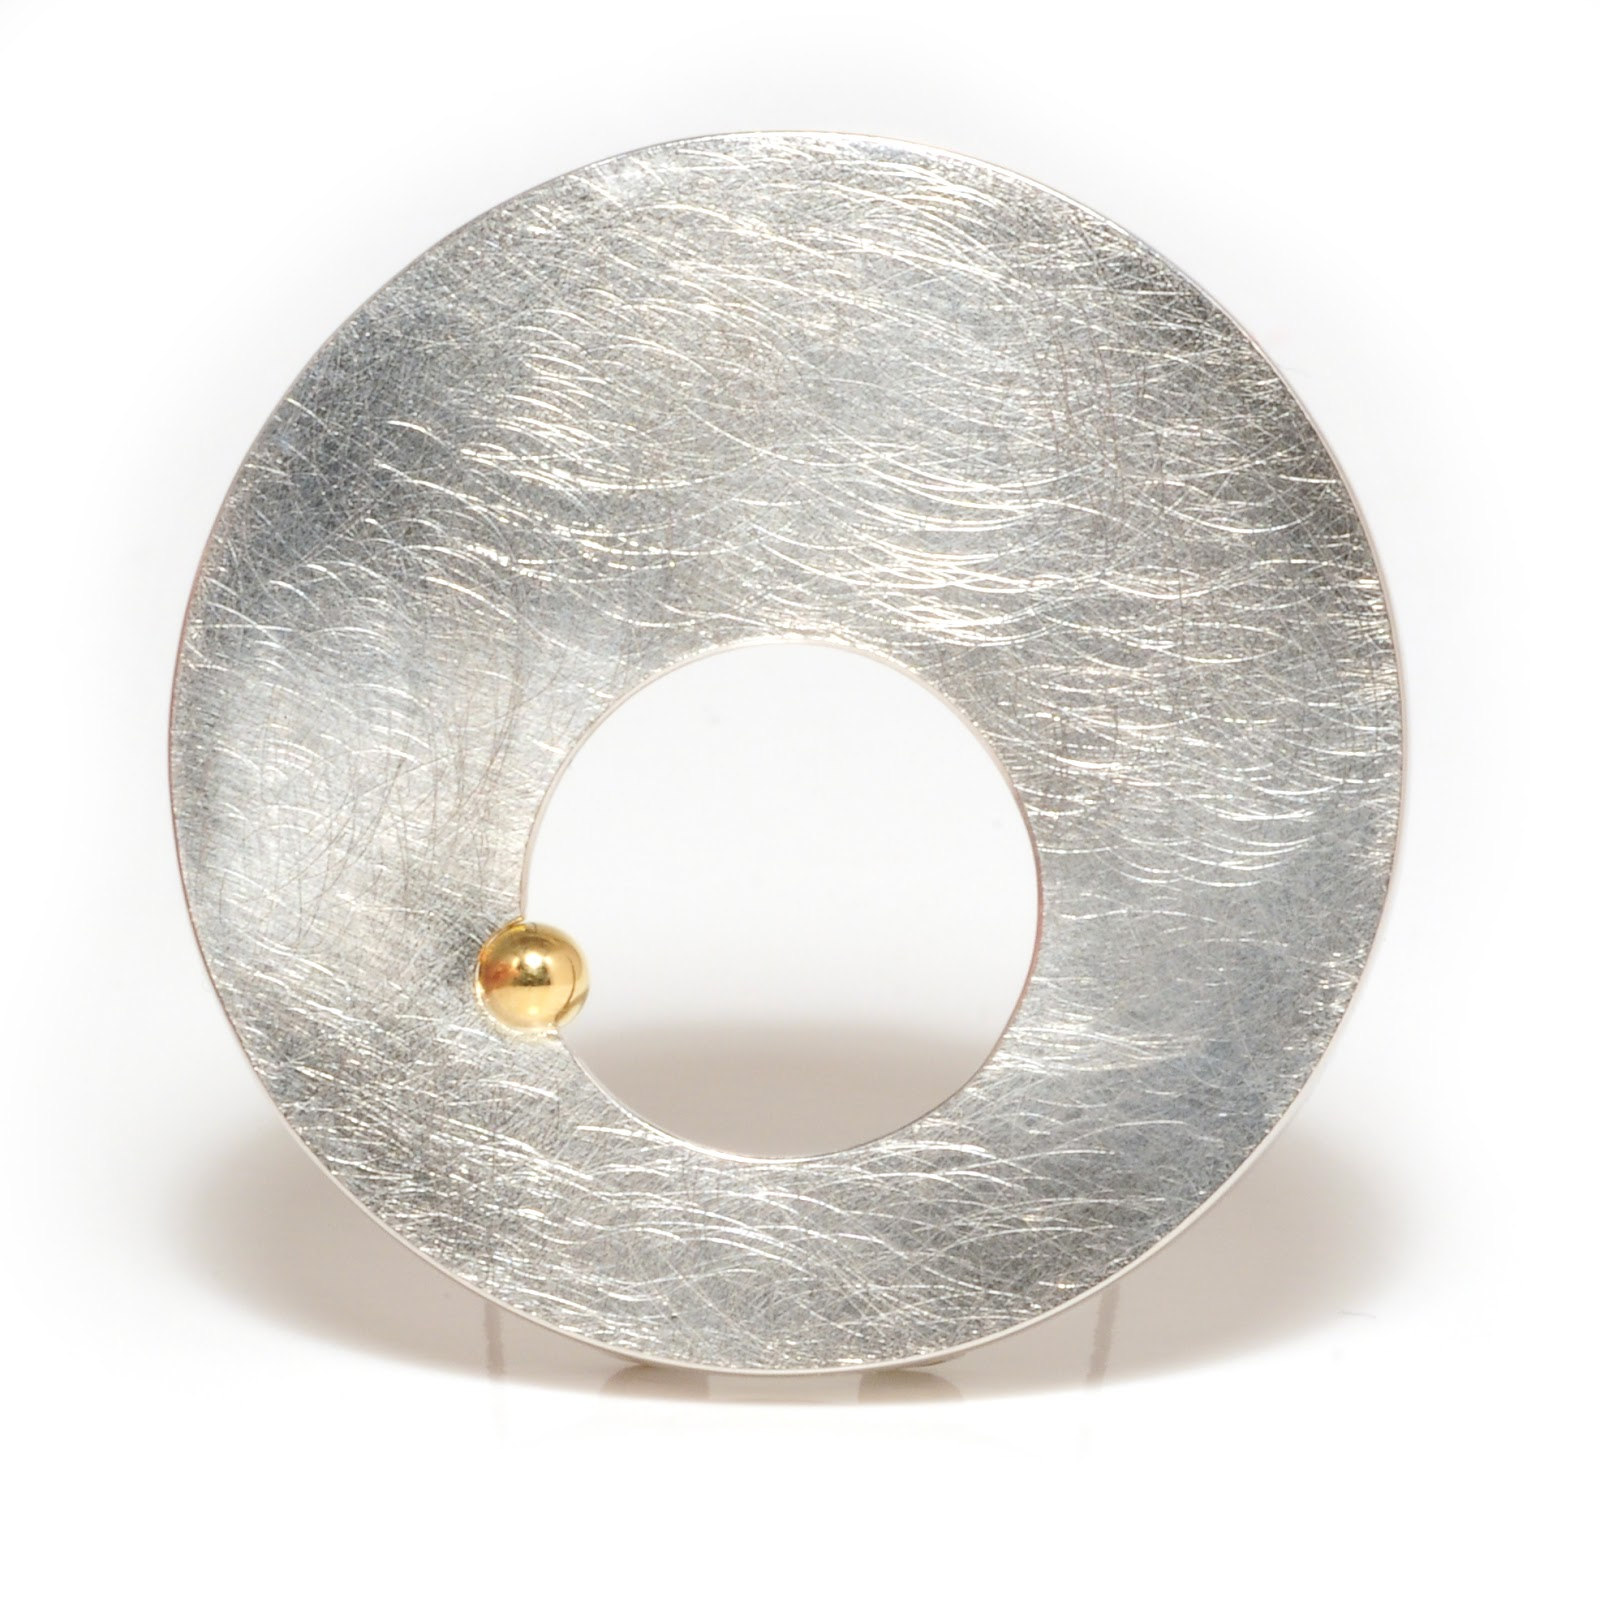 http://www.notonthehighstreet.com/machidewaardjewellery/product/silver-round-brooch-with-open-circle-and-gold-ball